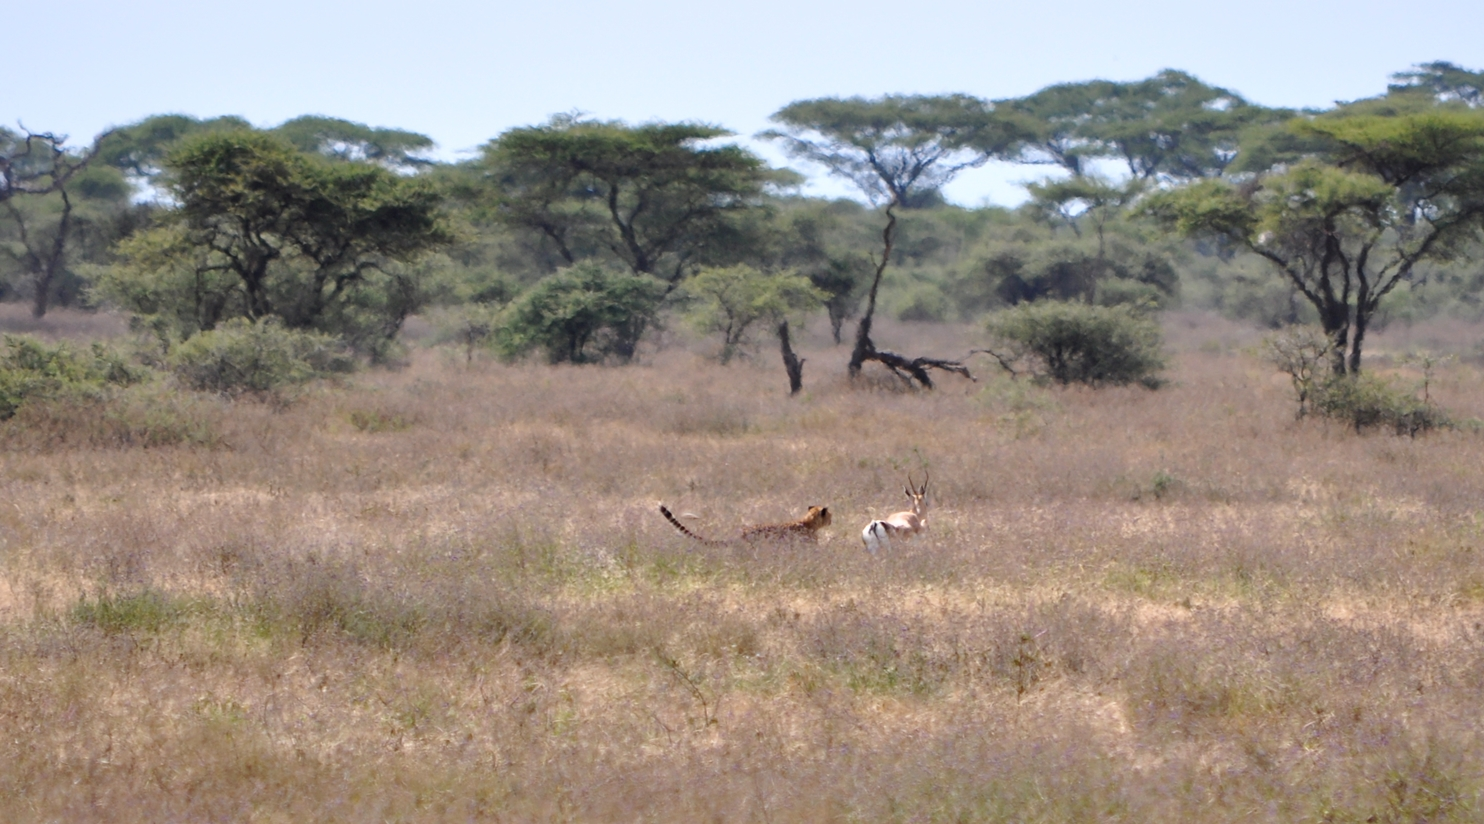 Tanzania -  Cheetah in a race